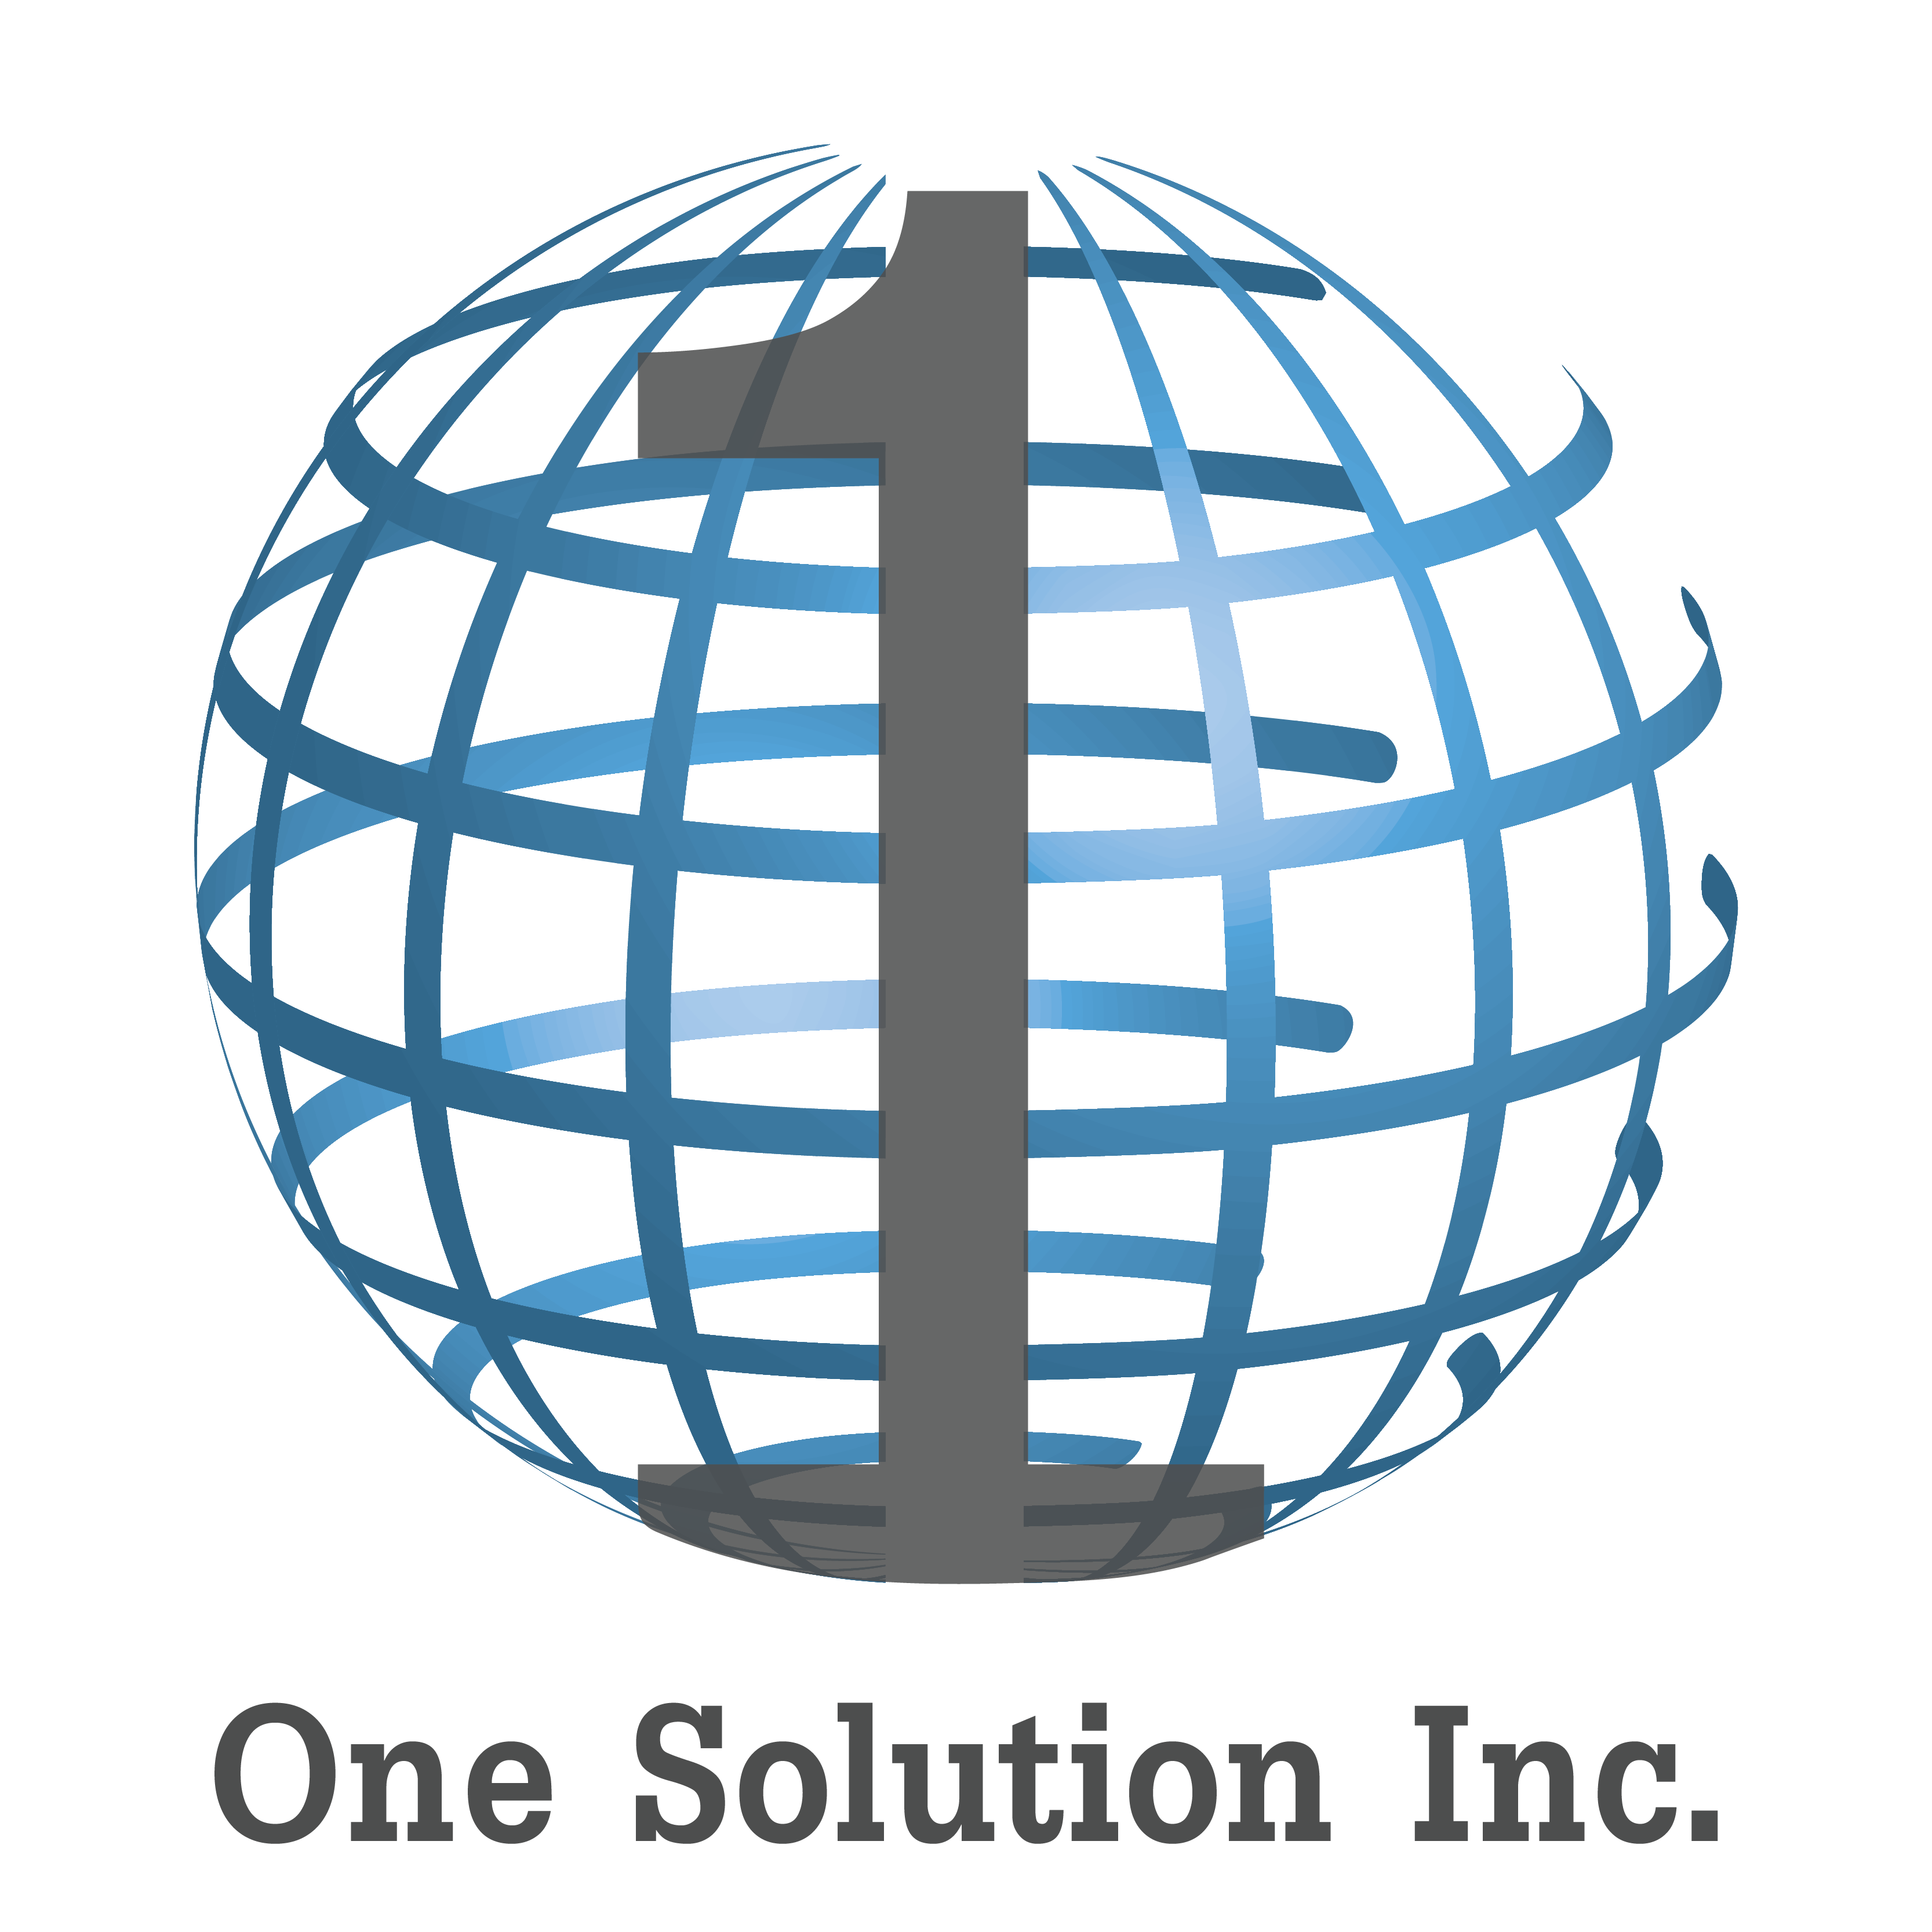 One Solution Inc